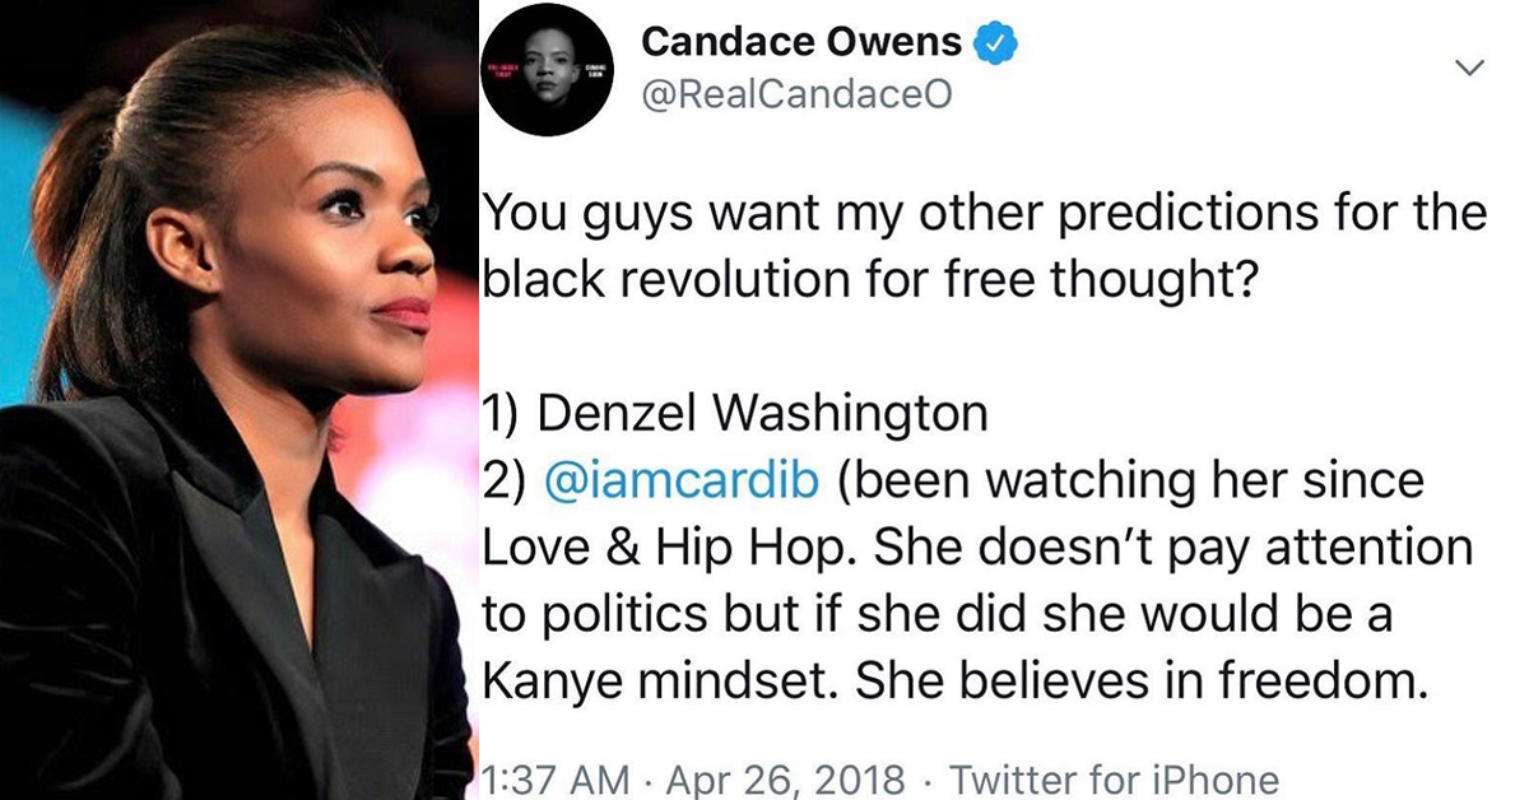 Cardi B hits back at author Candace Owens after she called her an 'embarrassment to Black people'